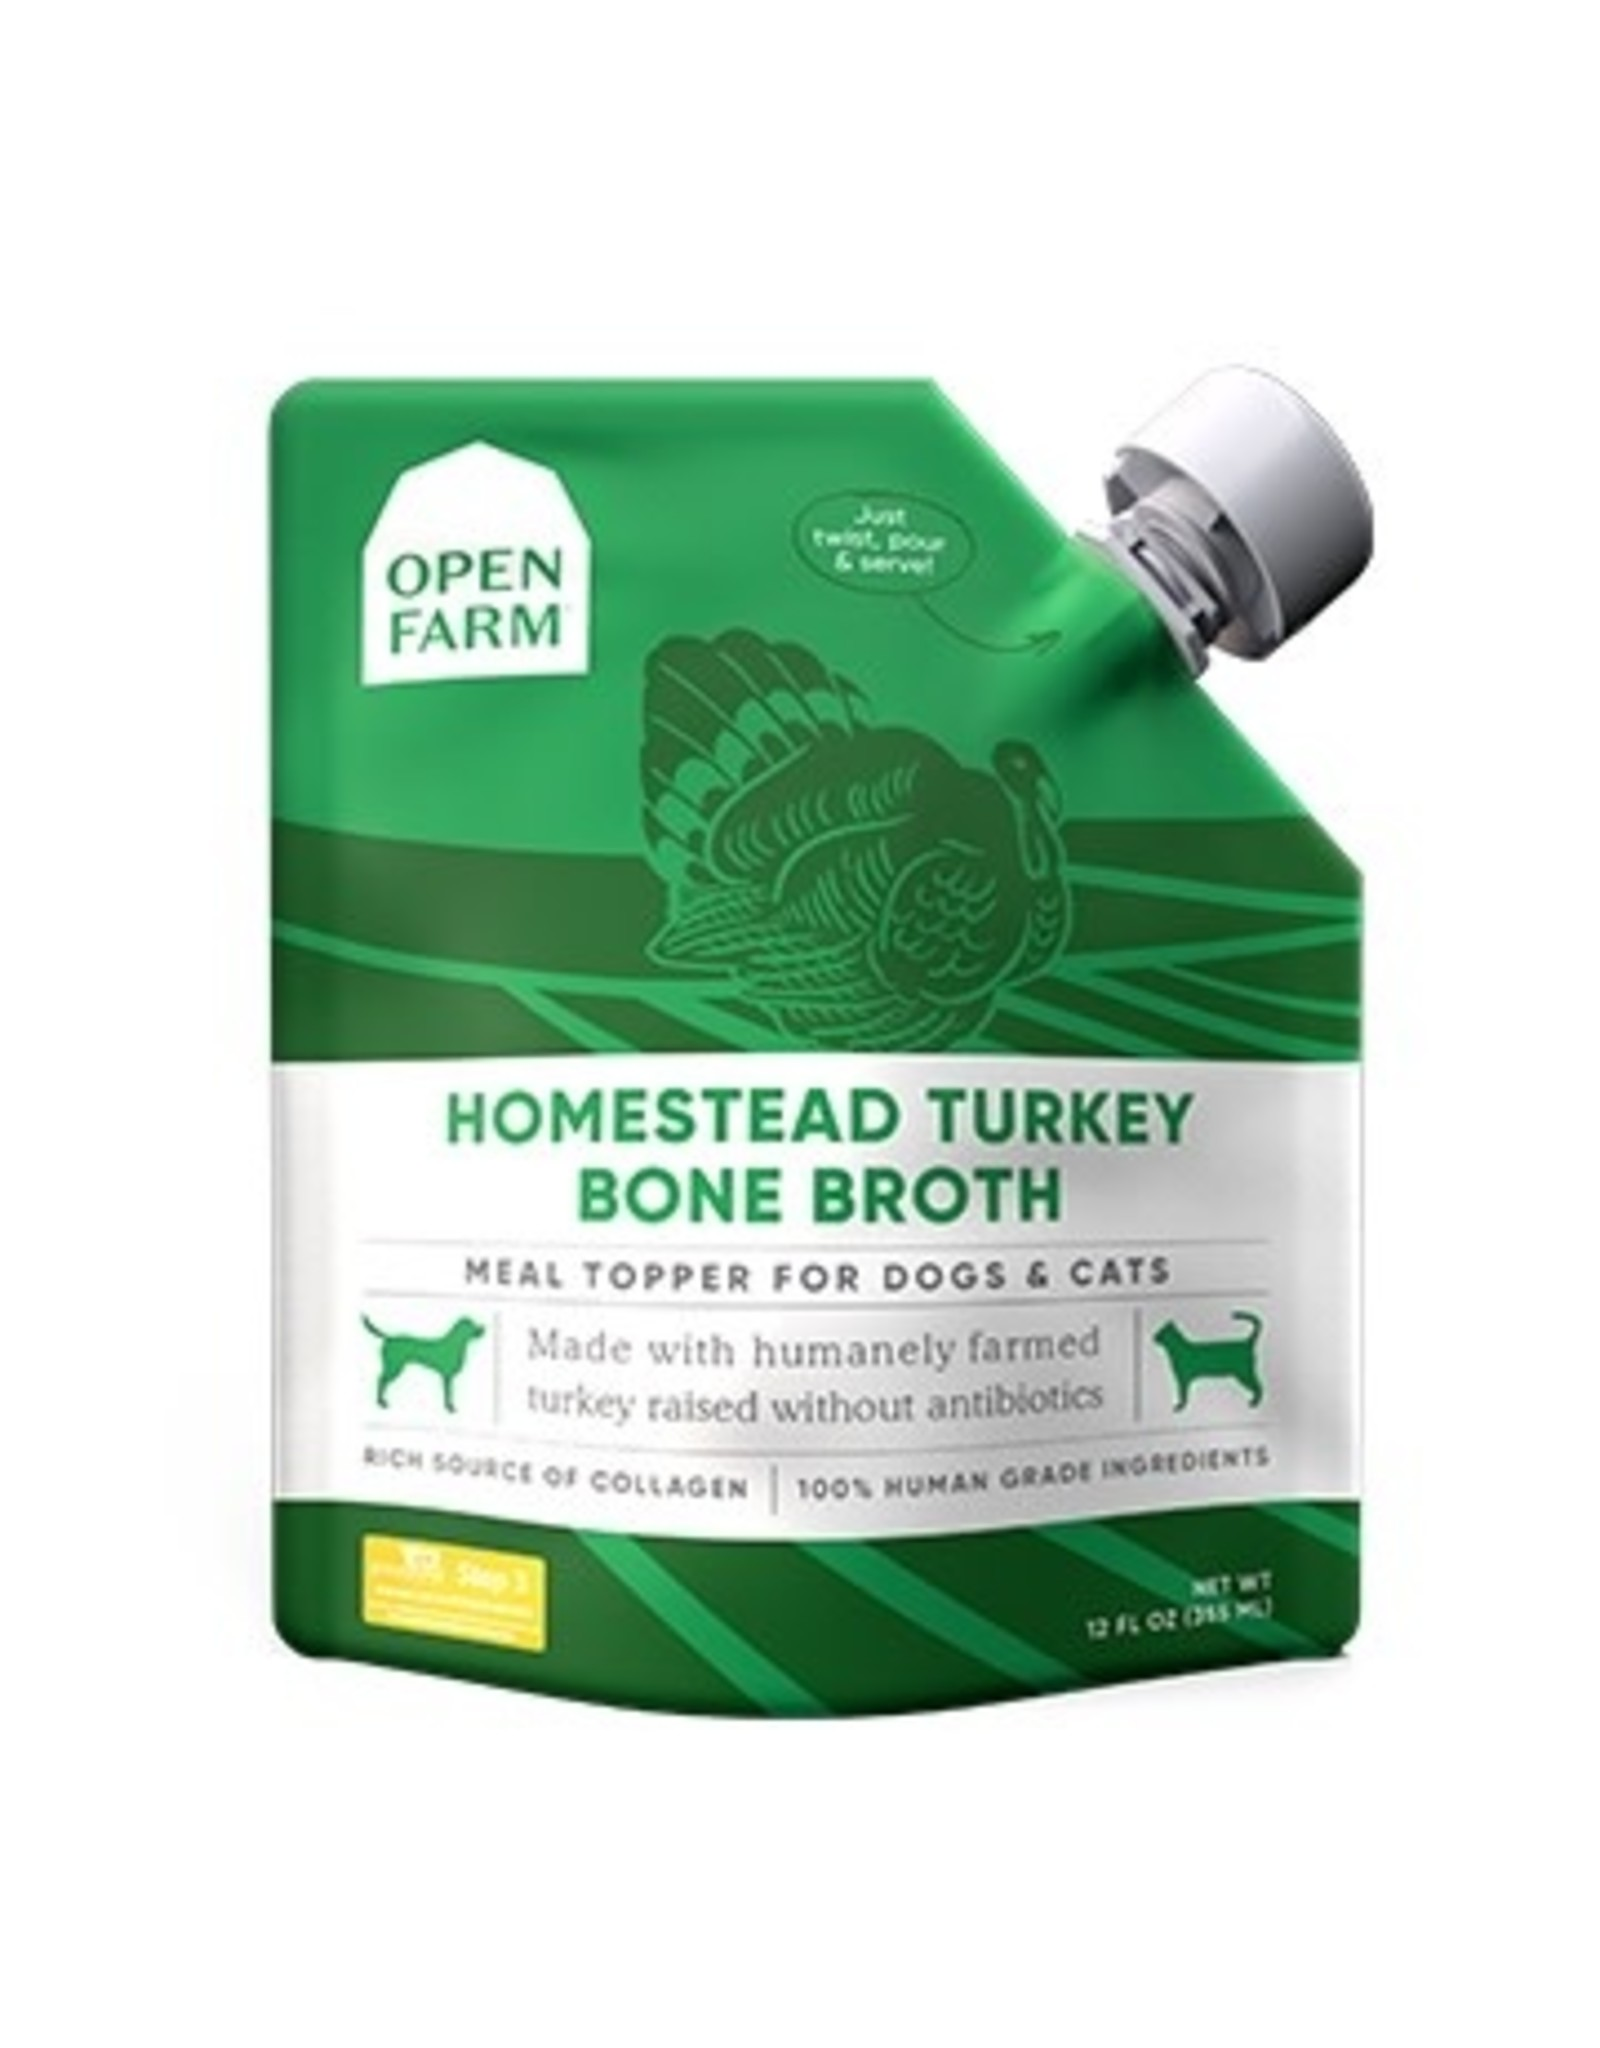 Open Farm Open Farm - Bone Broth - Turkey 12oz